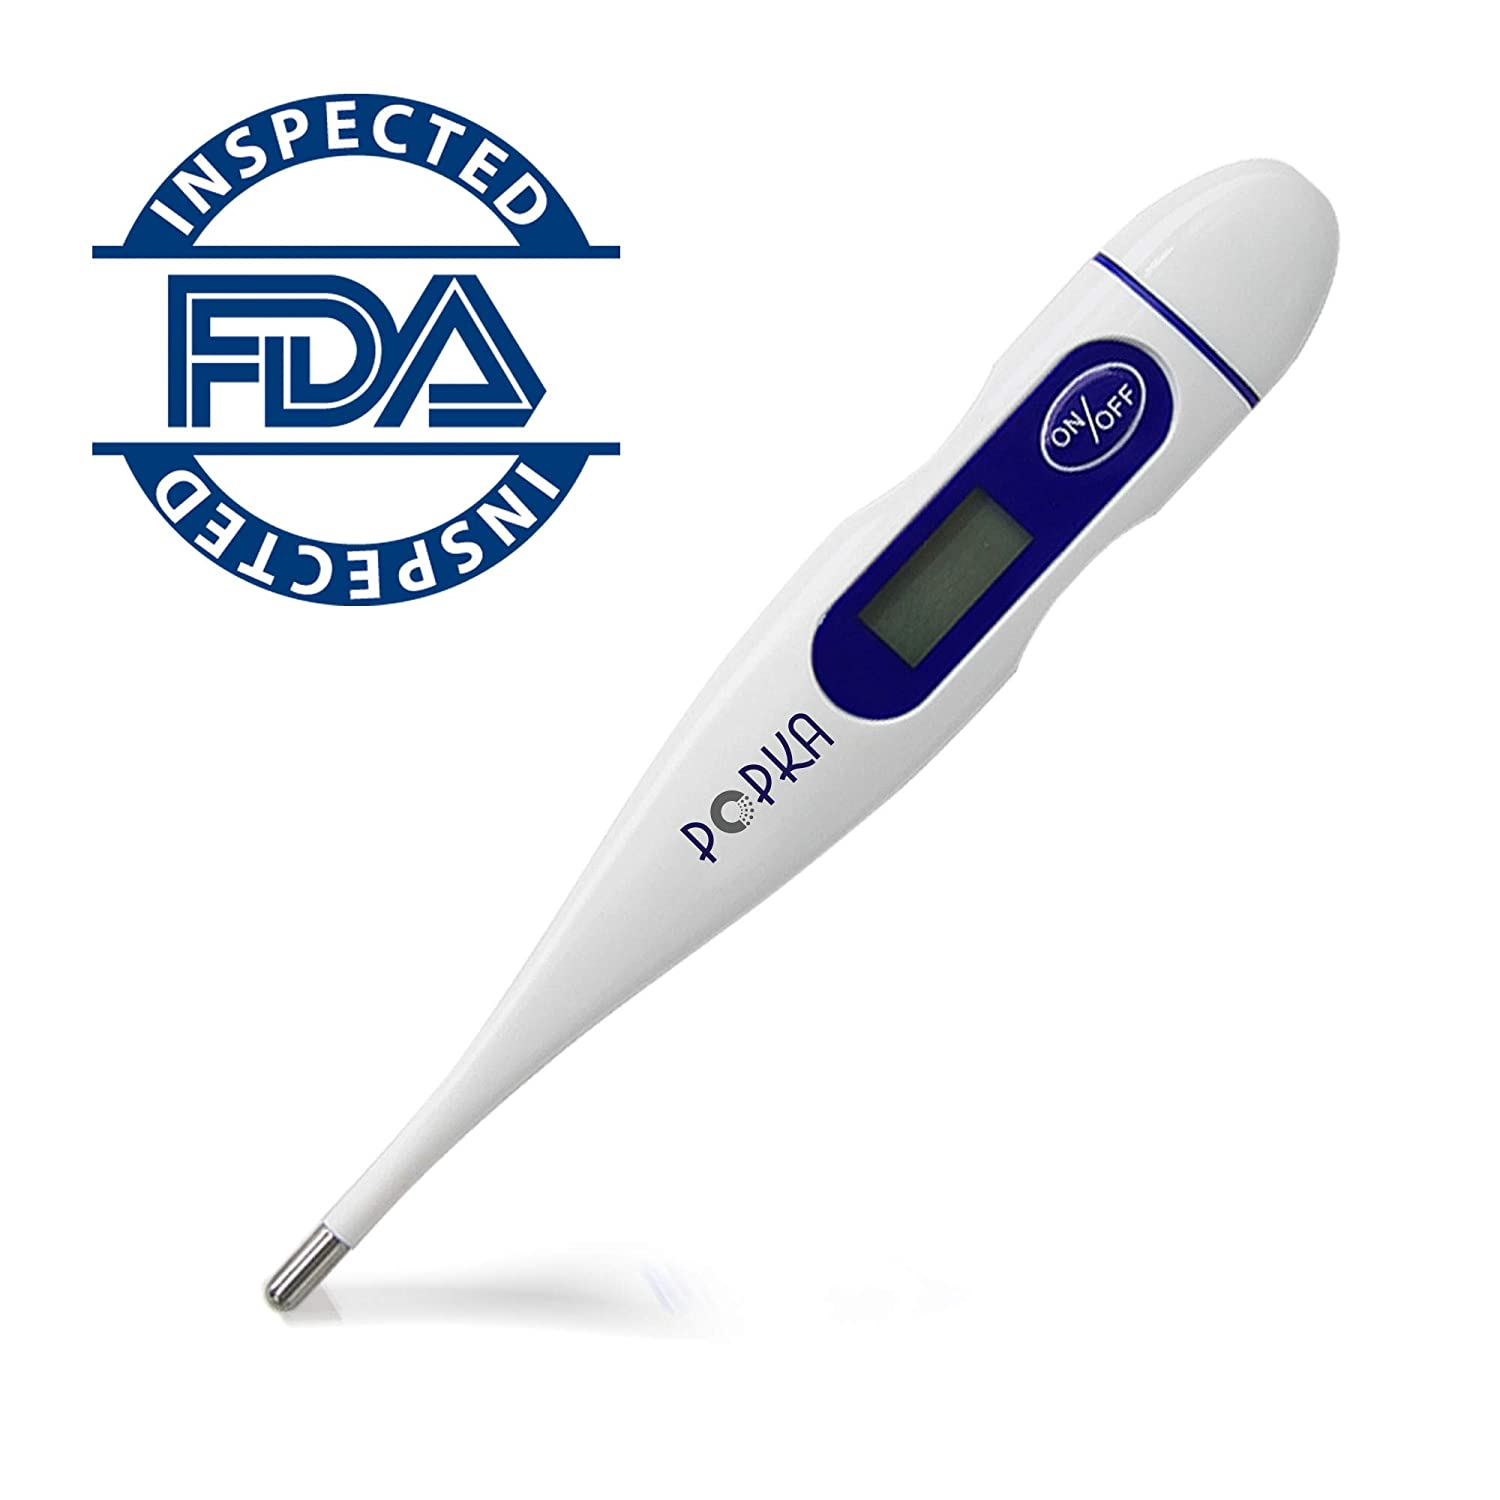 MALSA Digital Basal Thermometer for Ovulation Tracking BBT - Quick Reading,  Highly Accurate 1/100th